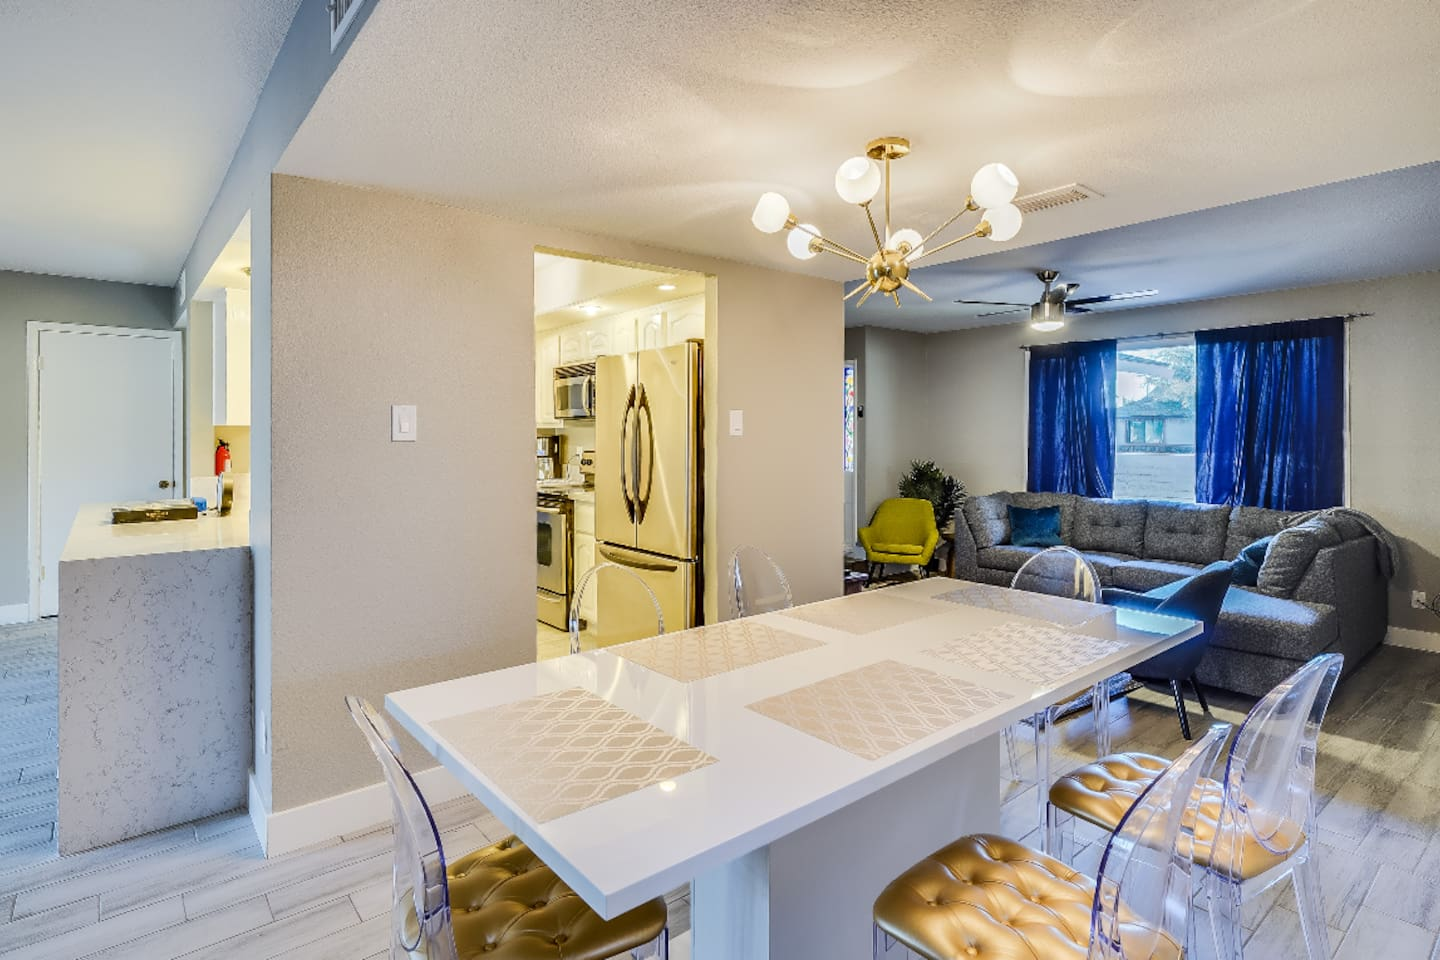 Completely remodeled 4 bed/ 2 bath home with new floors, baseboards, kitchen, granite, sinks, appliances, mindful grey paint, custom furnishing and much more!